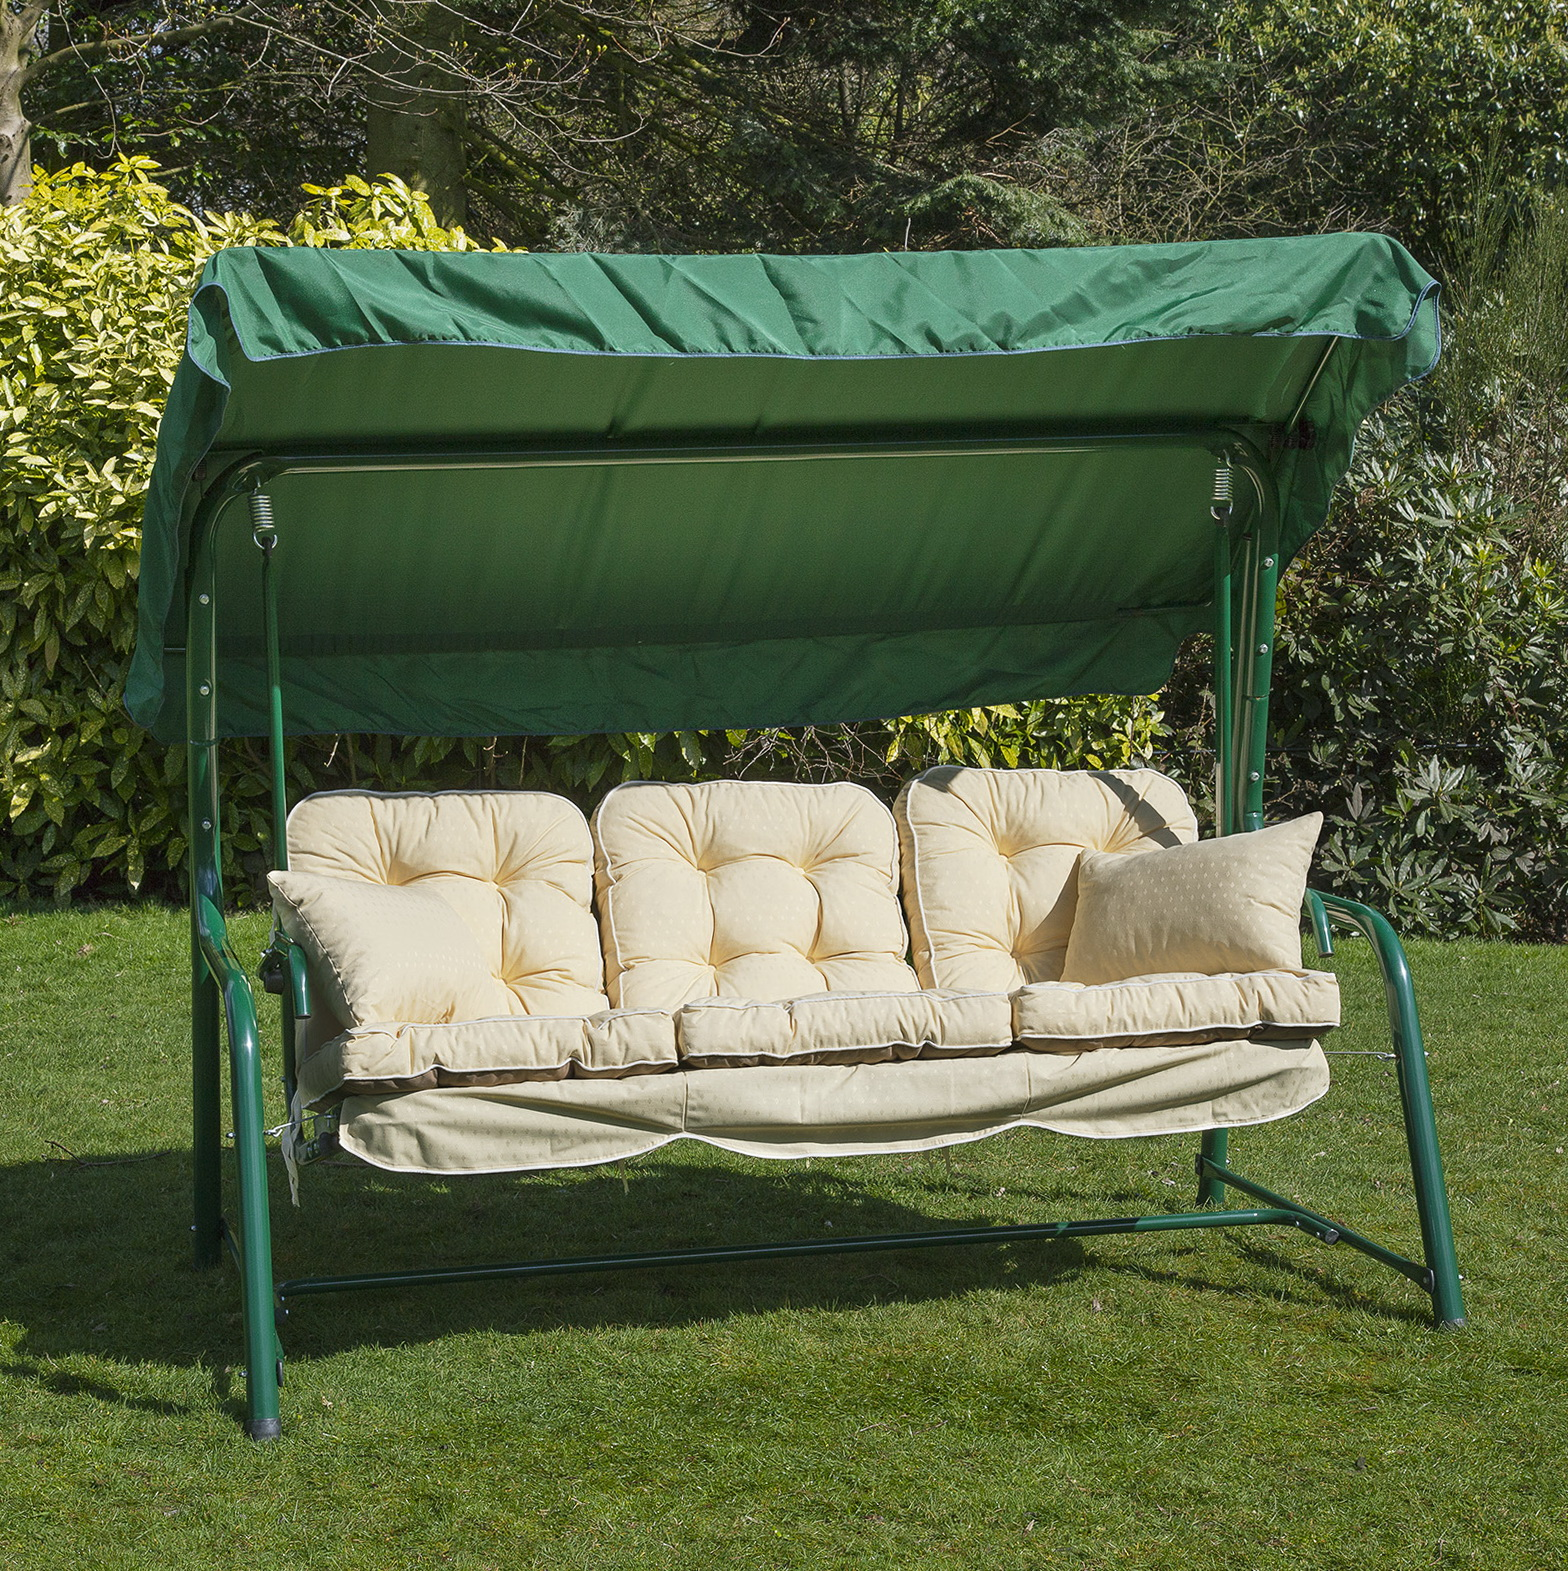 Swing Cushion Replacement Sets Home Design Ideas